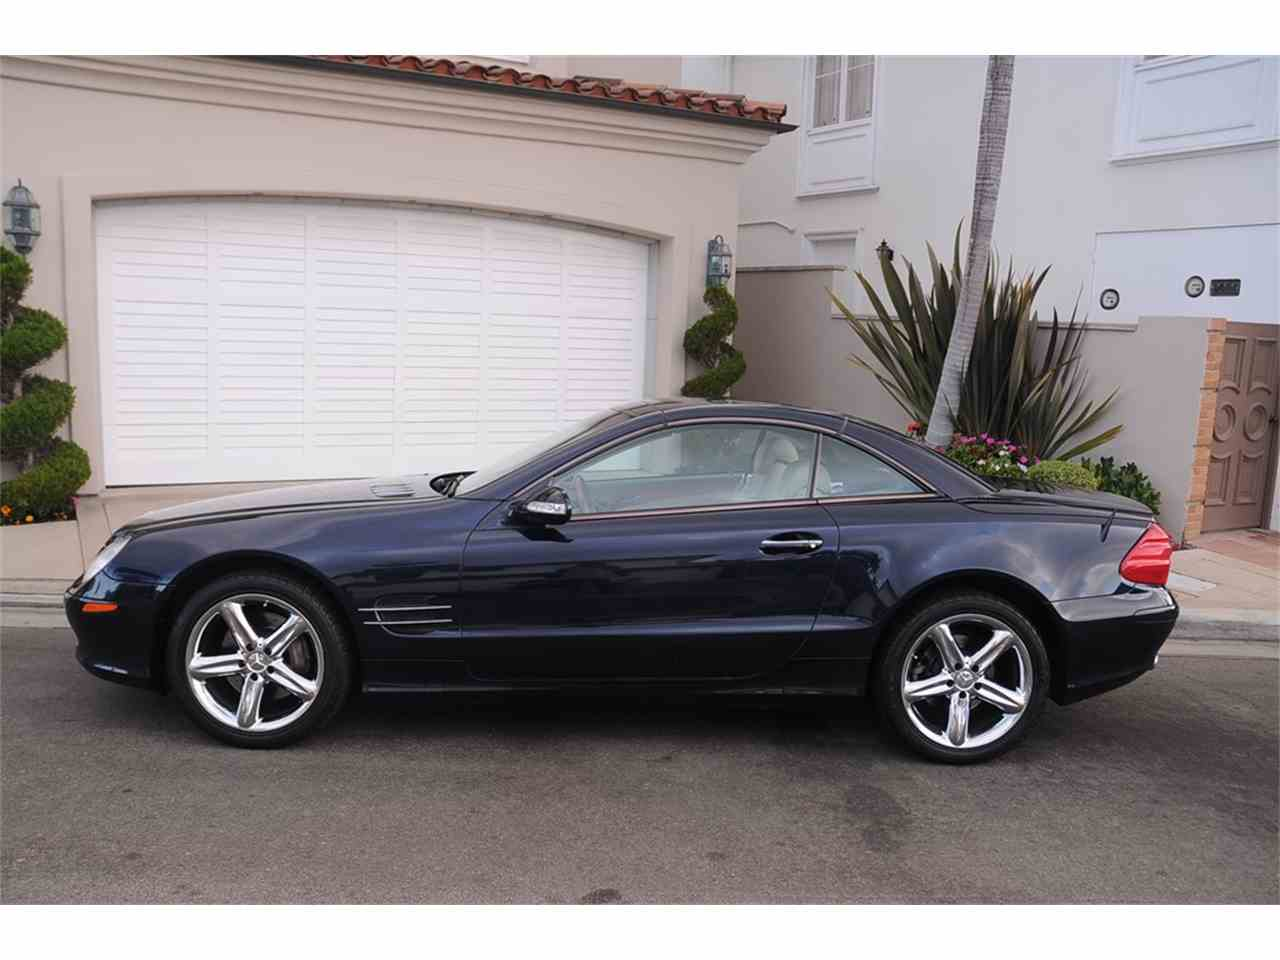 Large Picture of '03 SL500 located in Costa Mesa California - $13,990.00 Offered by Star European Inc. - M694